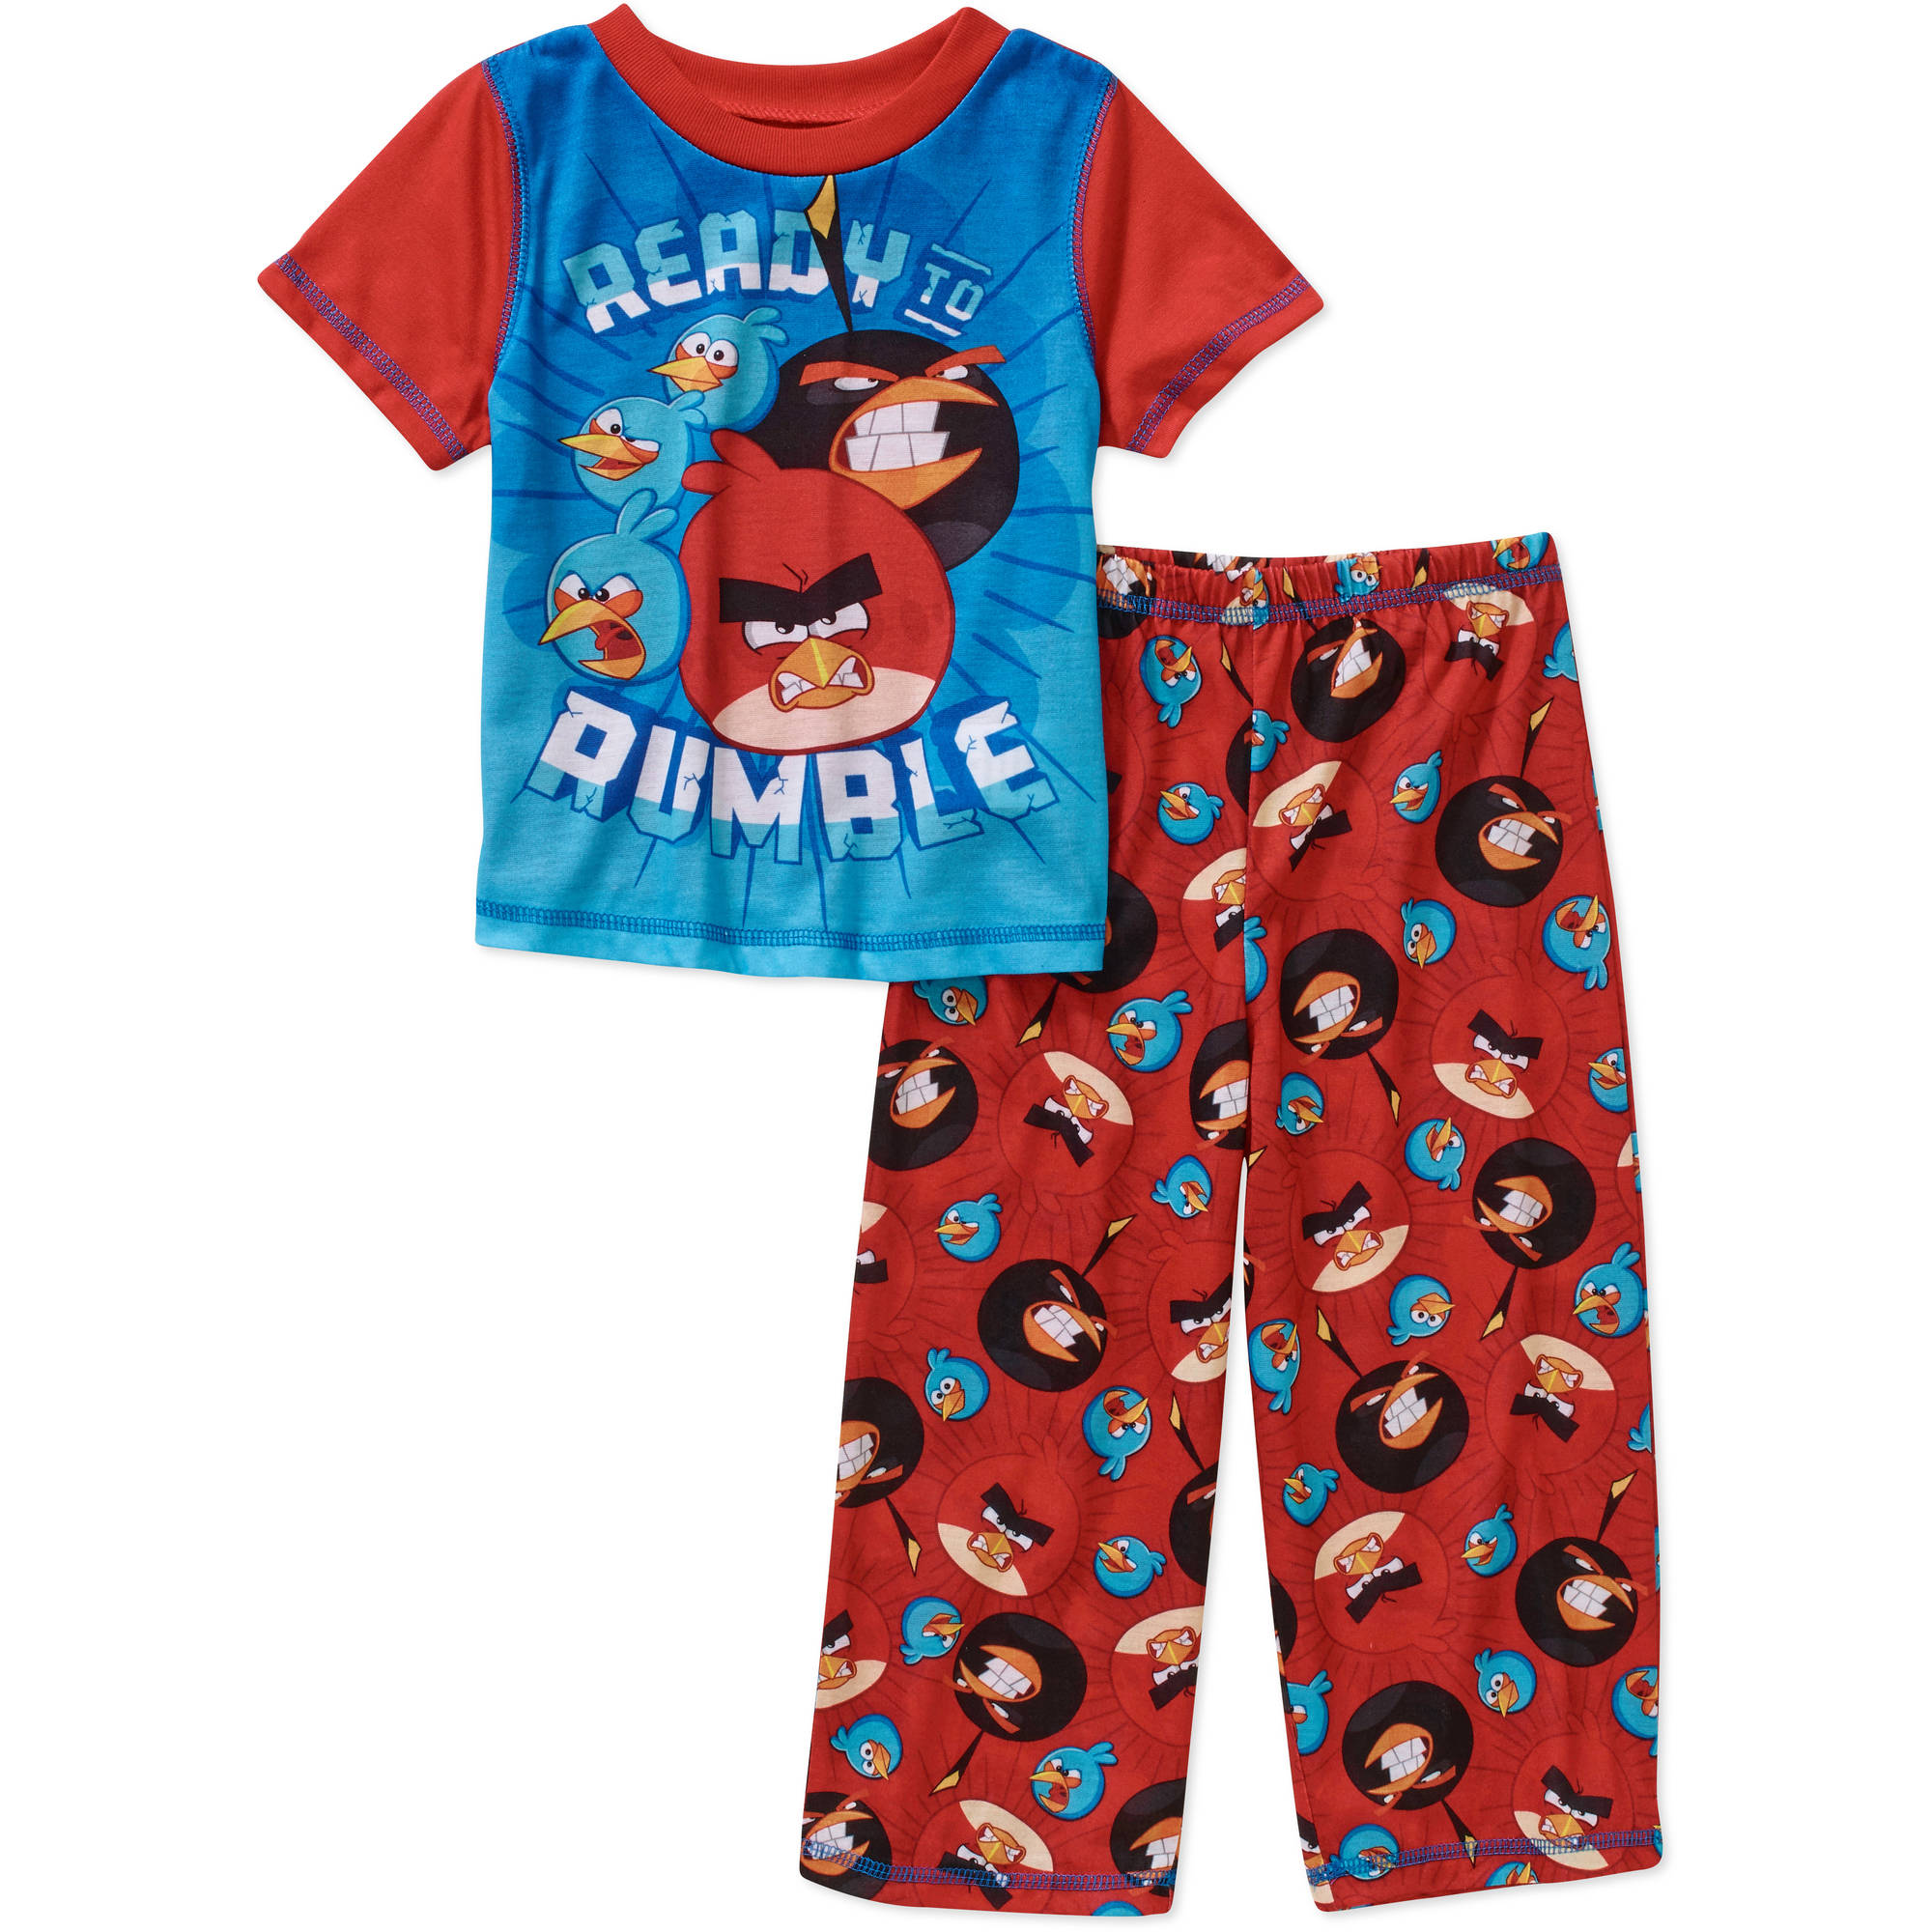 Kids' Pajamas & SleepwearApparel, Home & More· New Events Every Day· Hurry, Limited Inventory· New Deals Every Day57,+ followers on Twitter.